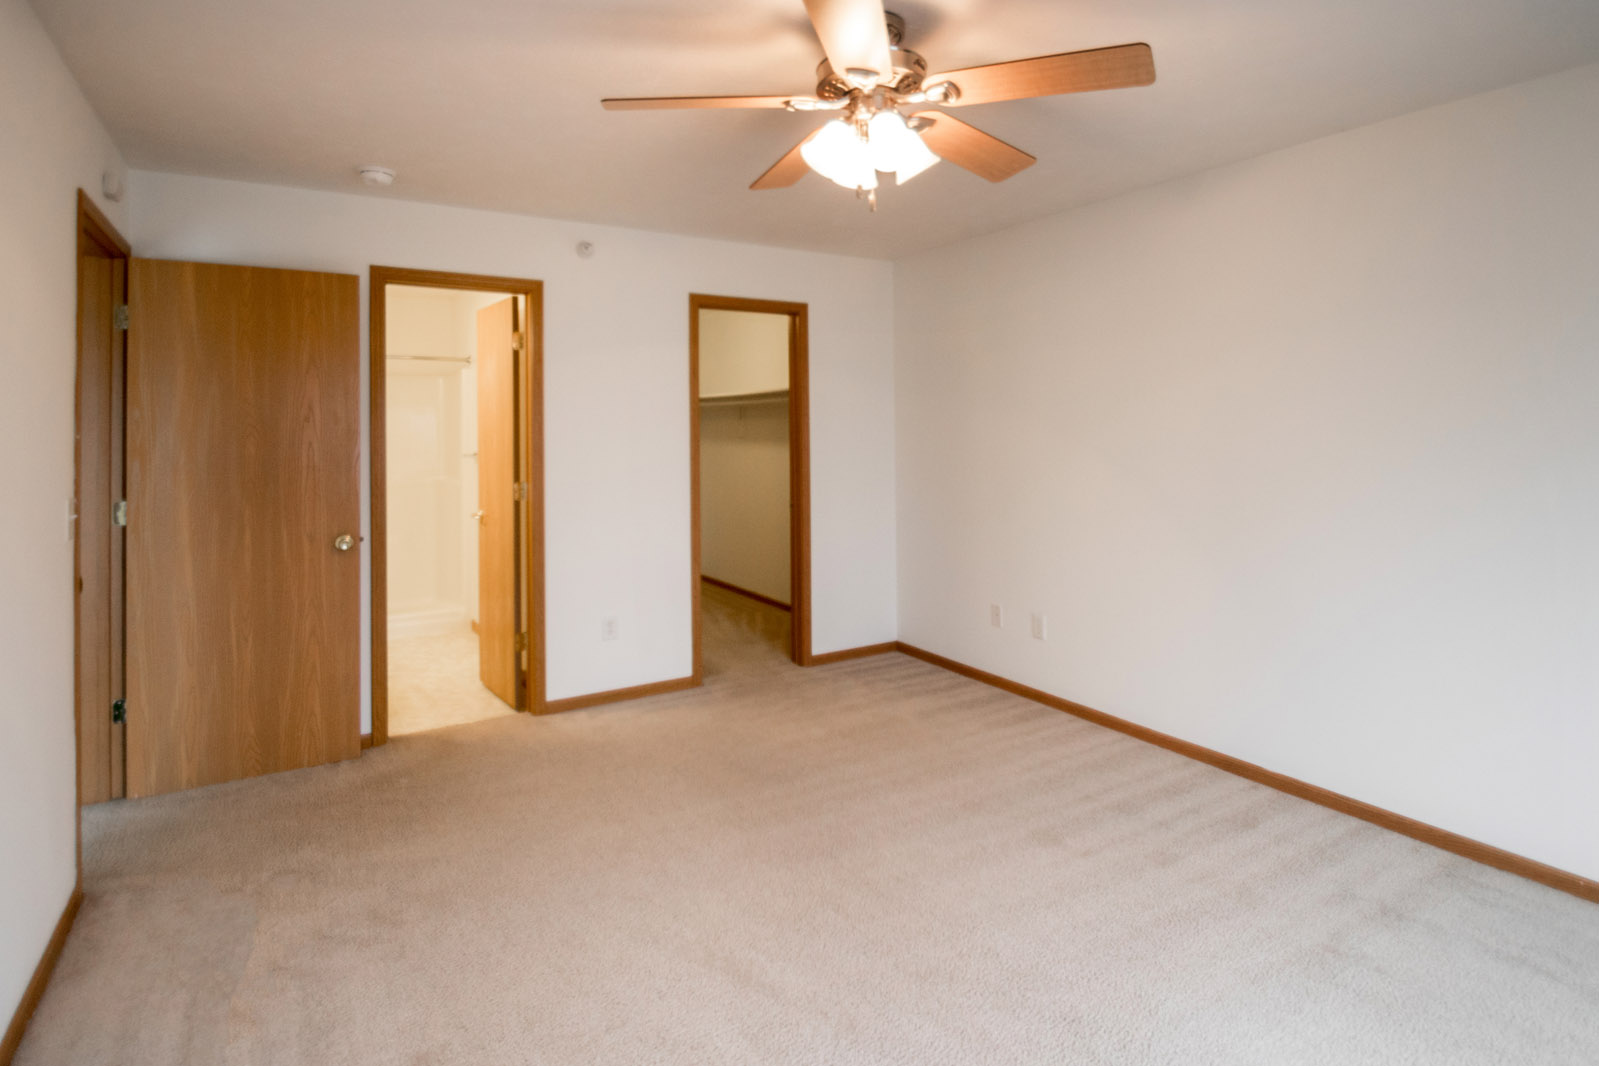 Walk-in Closets at Northridge Apartments in Gretna, Nebraska